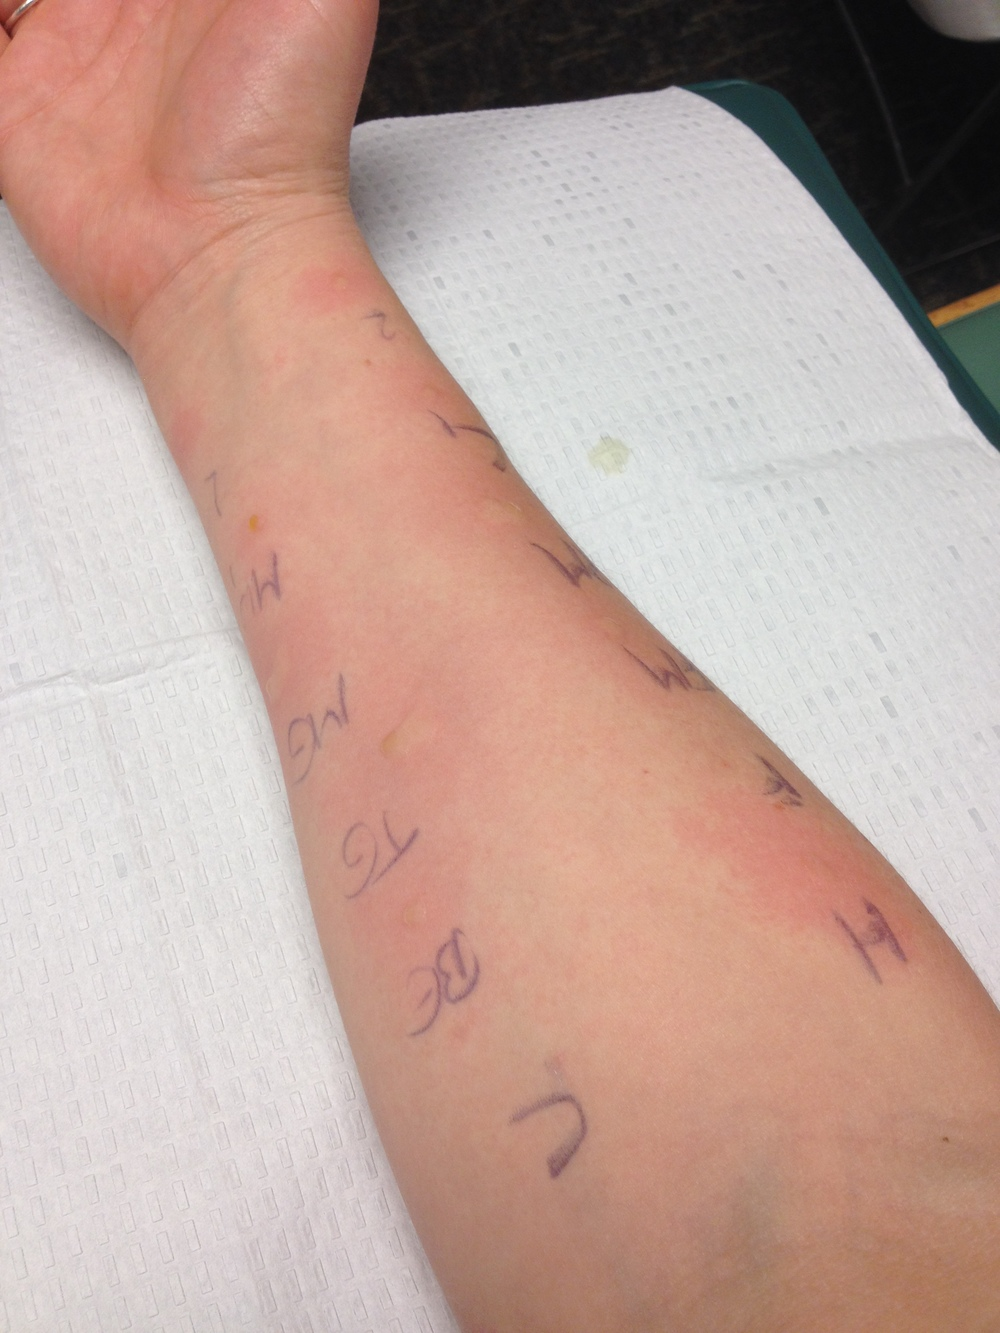 My weird arm during the allergy test